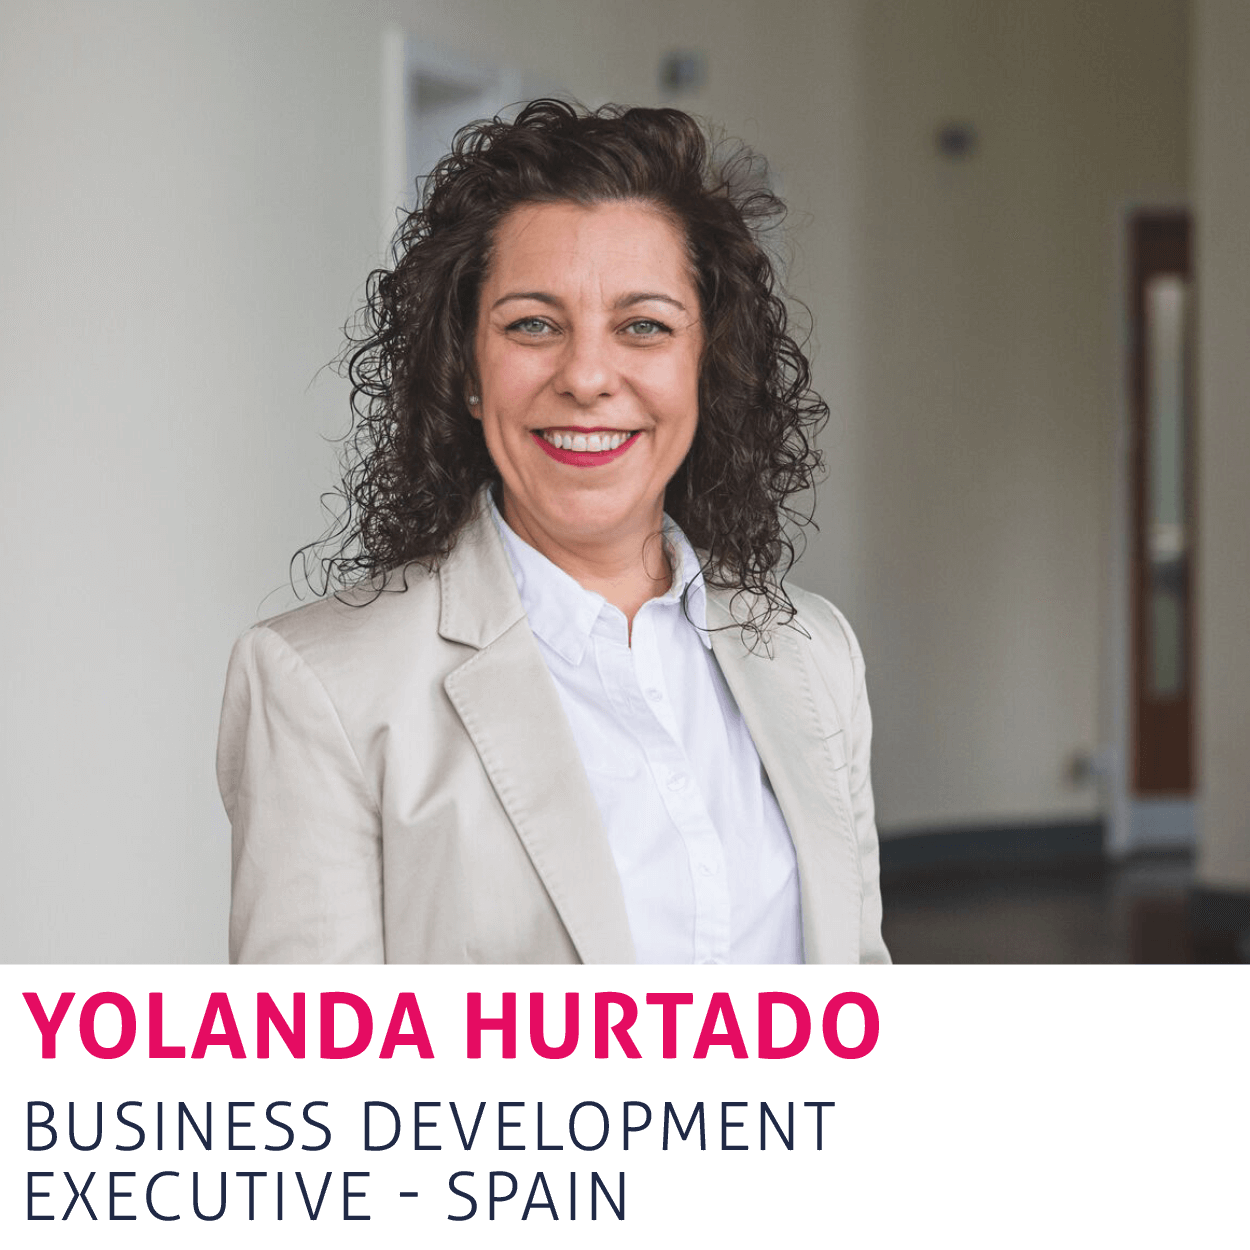 Yolanda Hurtado, Business Development Executive - Spain